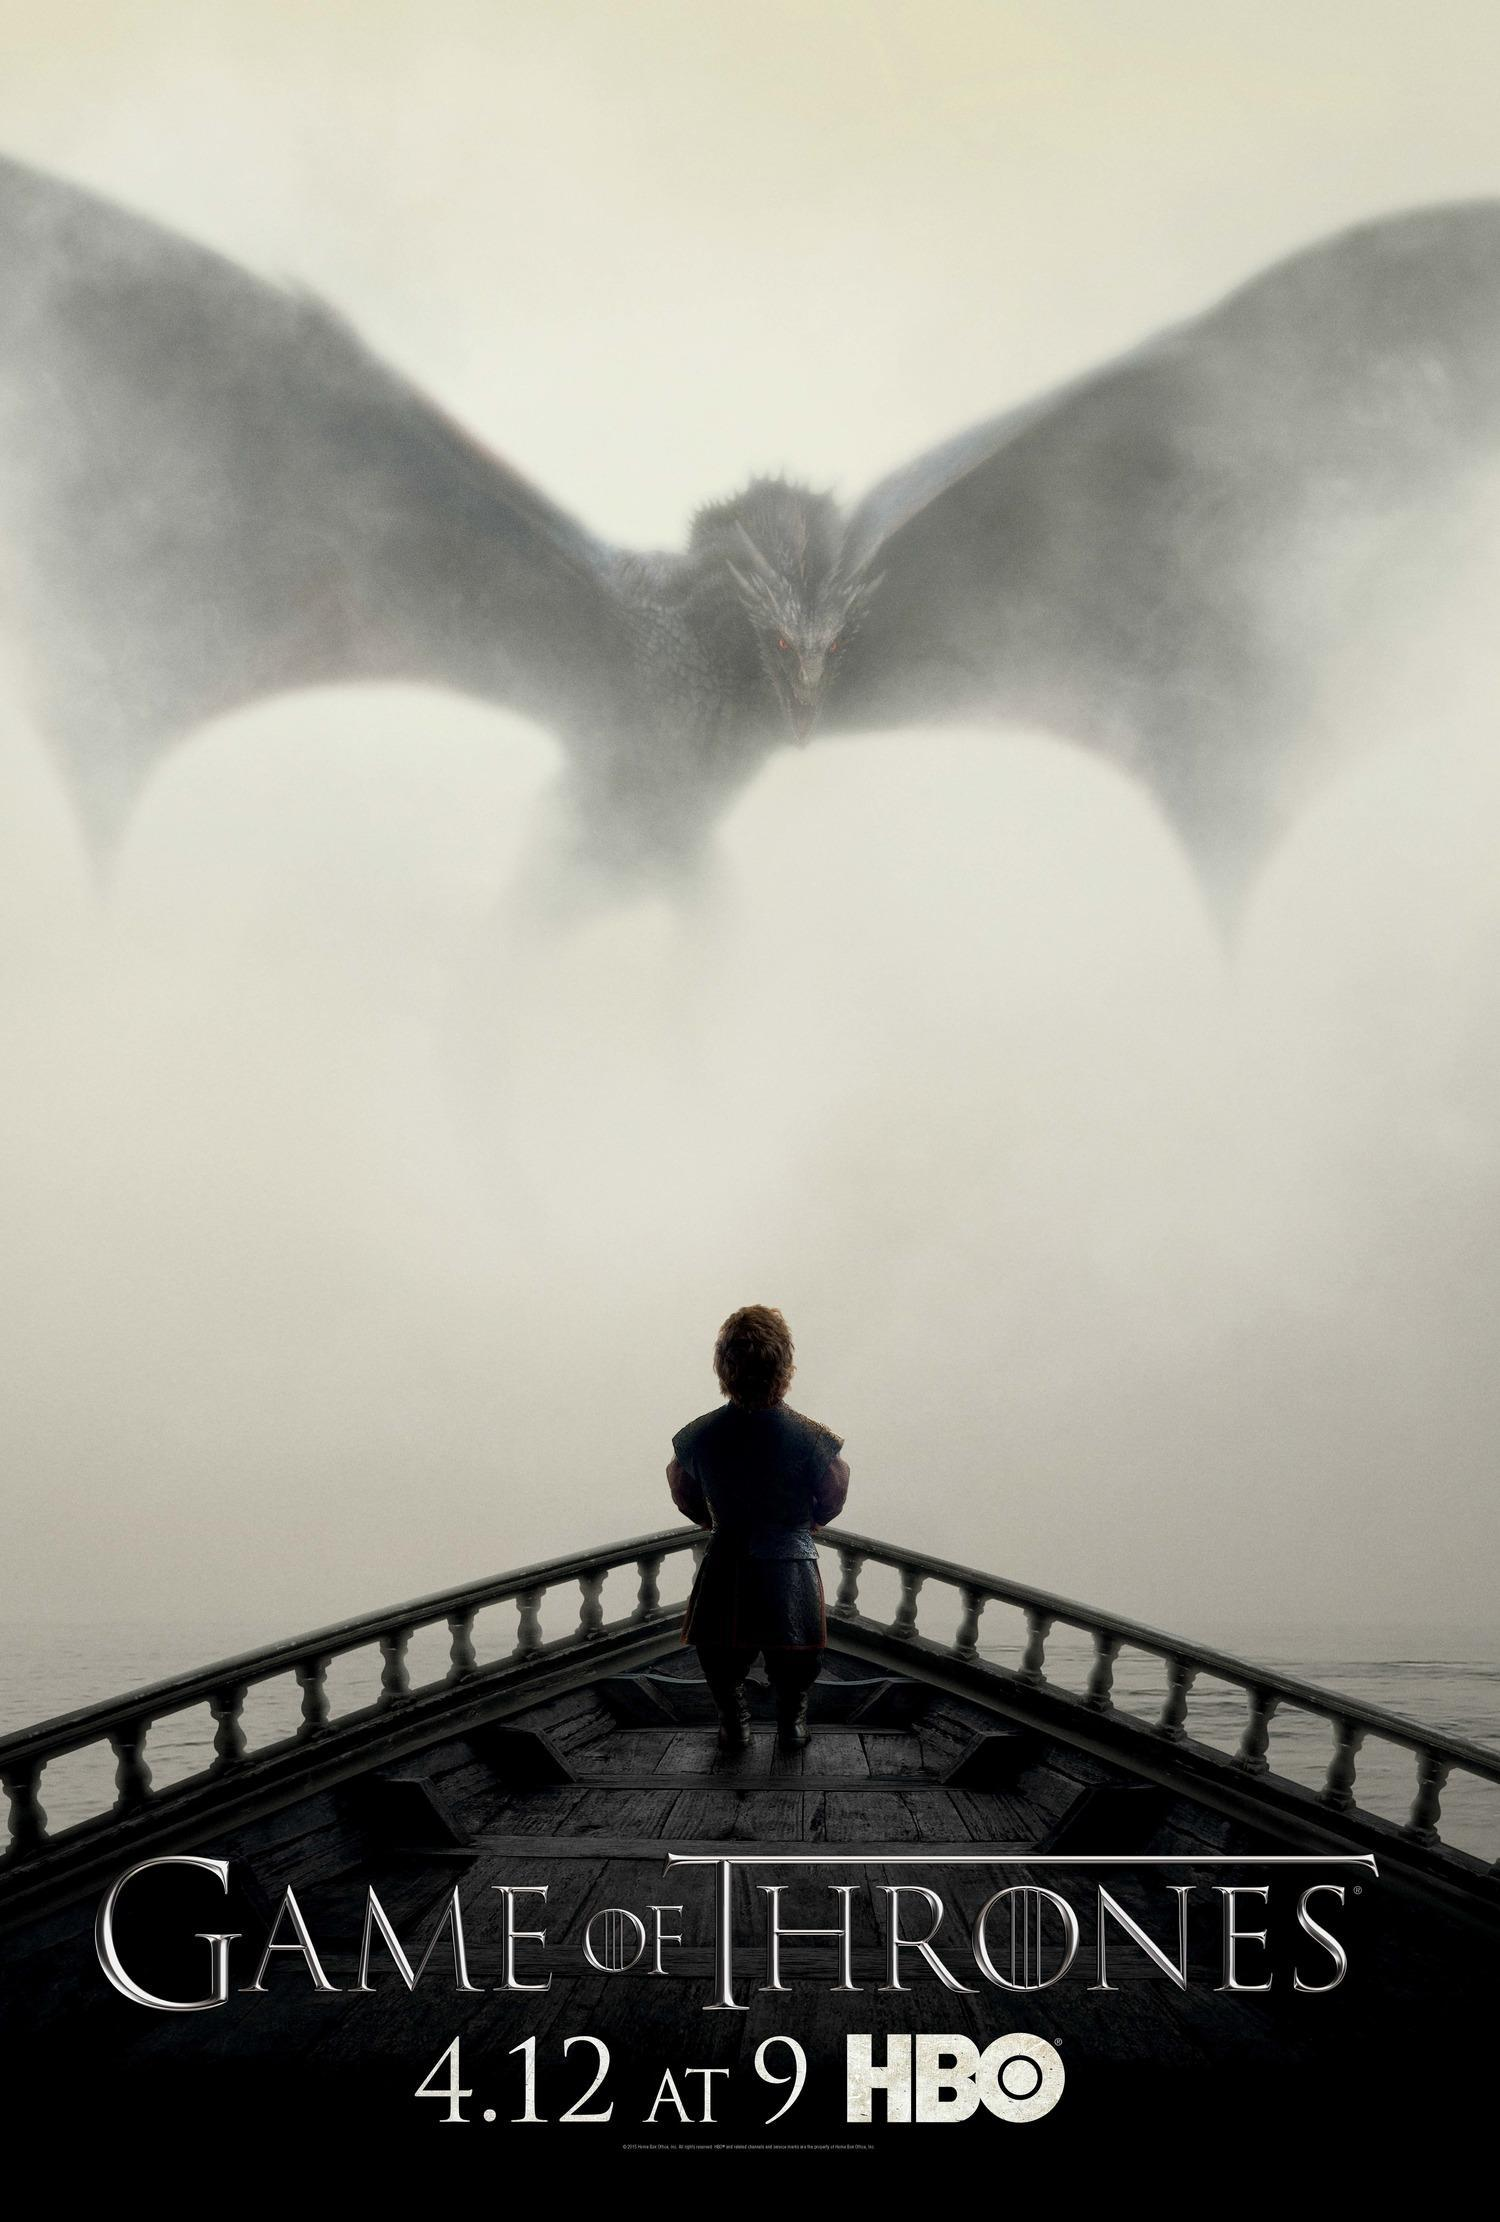 http://watchersonthewall.com/wp-content/uploads/2015/02/GOT-S5-Poster.jpg